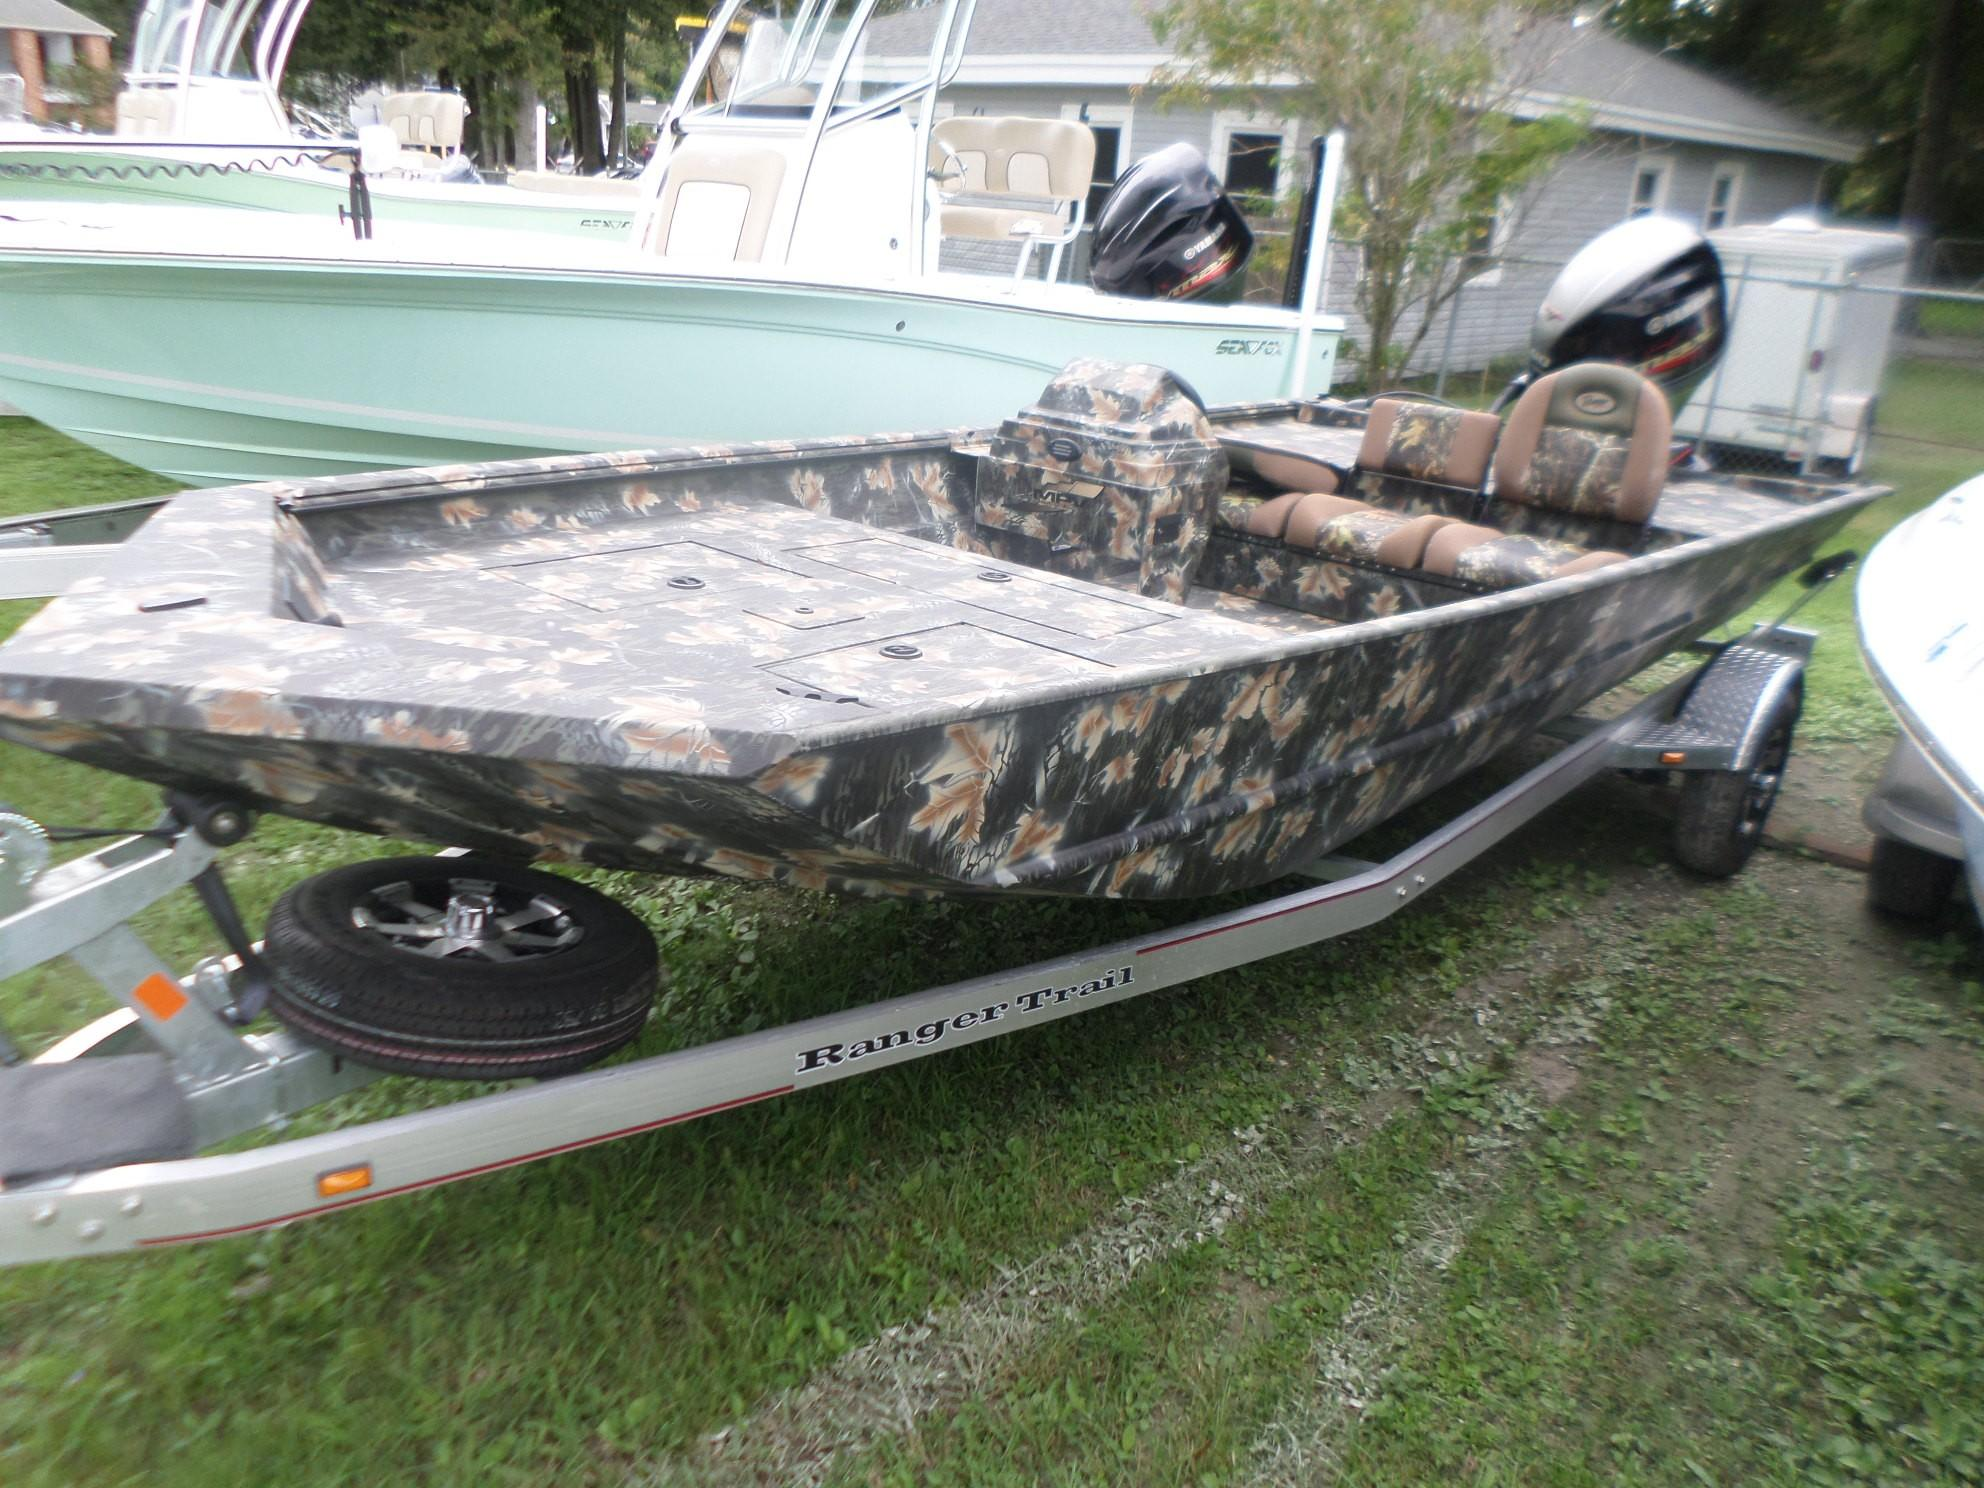 New  2019 18' Ranger MPV 1862cc Aluminum Fish Boat in Slidell, Louisiana